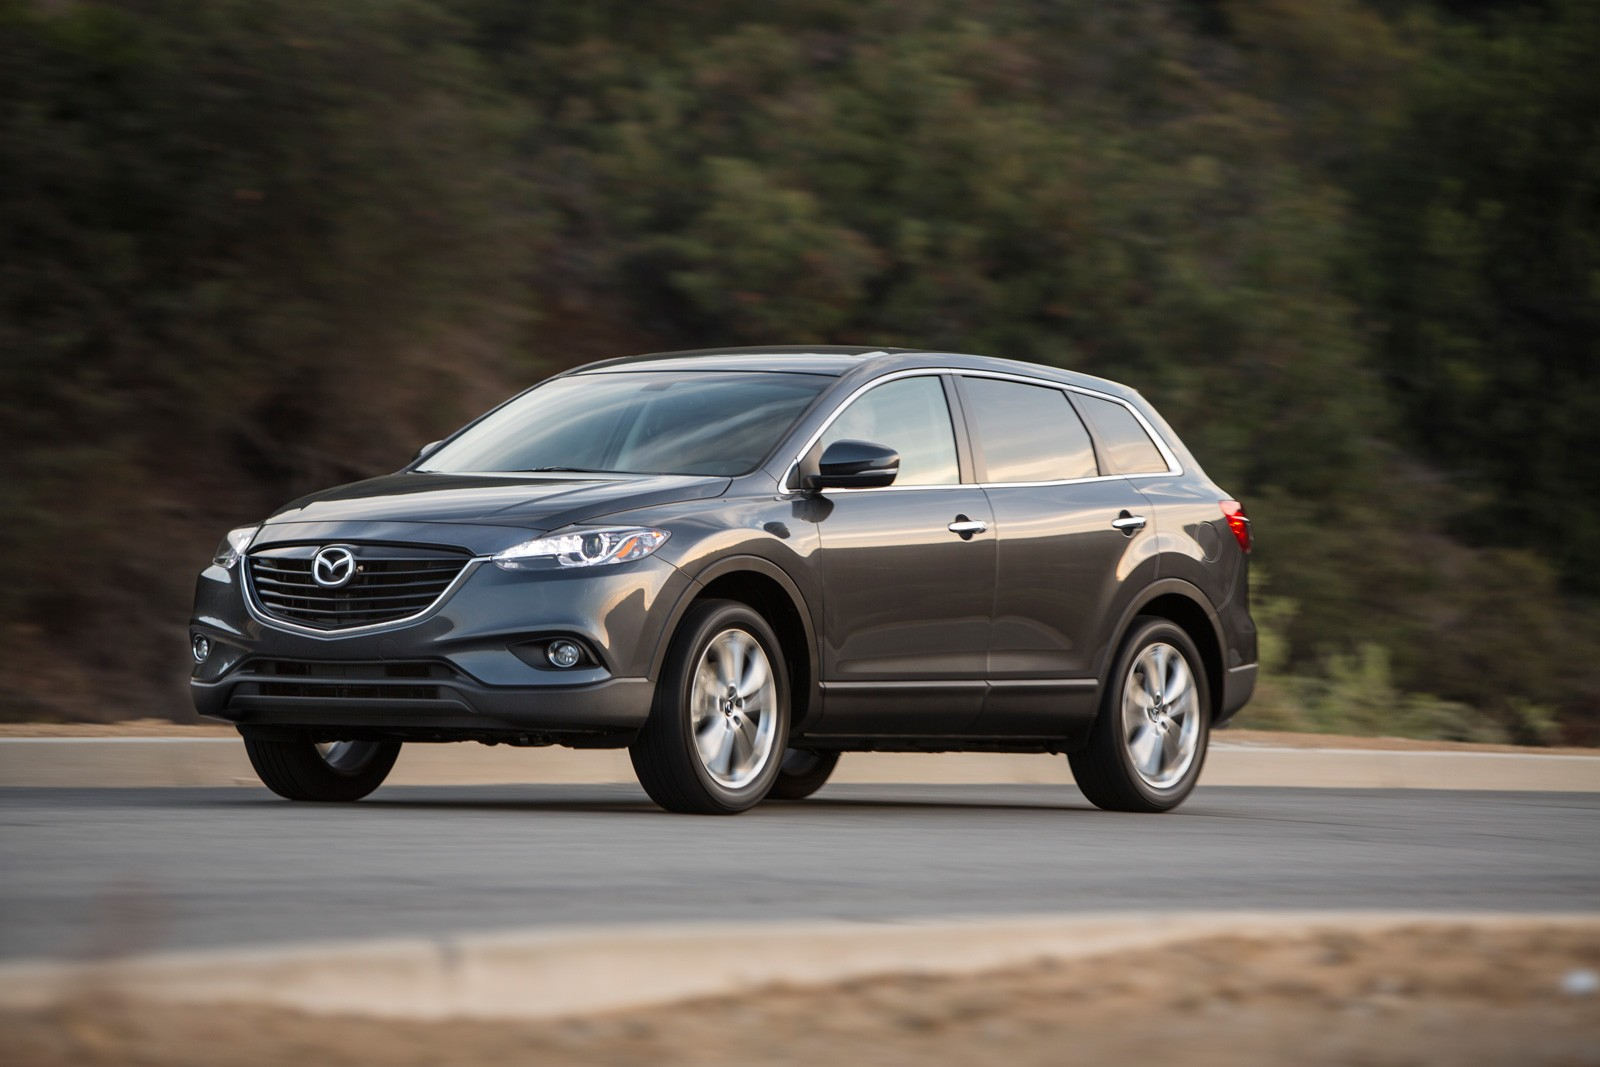 A brand new mazda cx 9 is a bit off the 30 000 mark with a starting price of 32 460 but that means it s not too difficult to find a used or cpo model